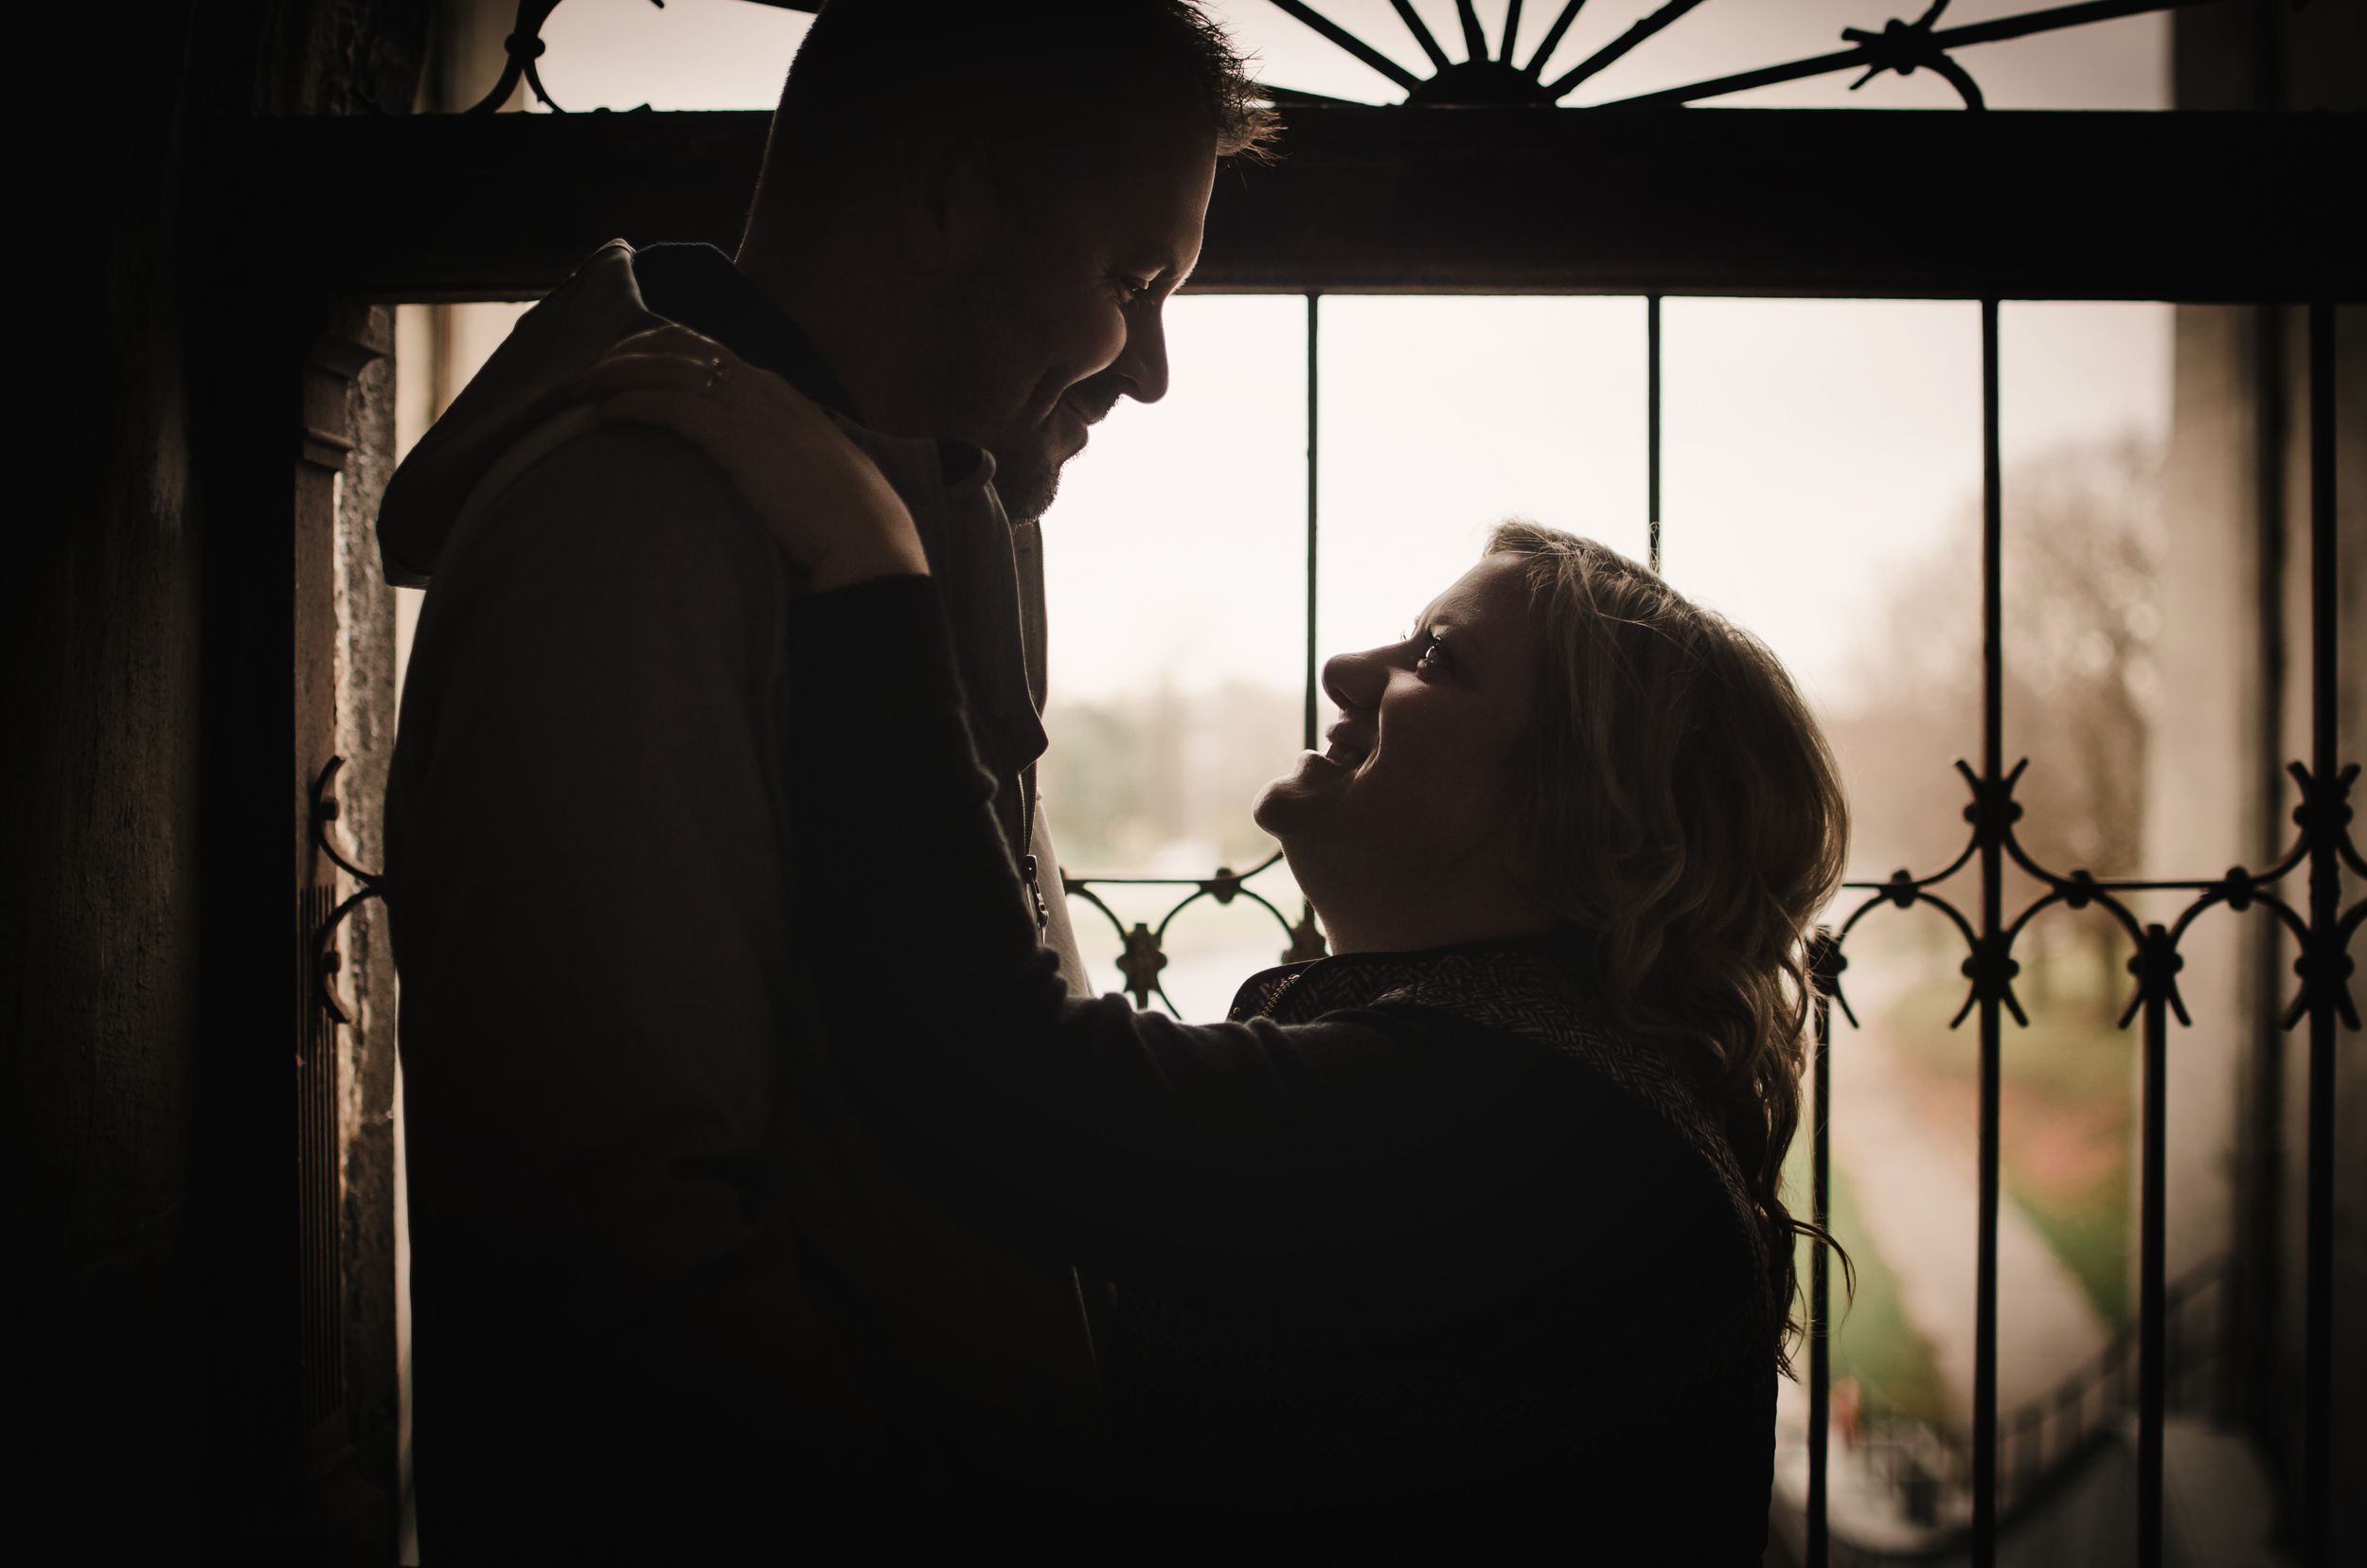 Engagement | Fine Art Portrait Photographer located in Cobourg, ON